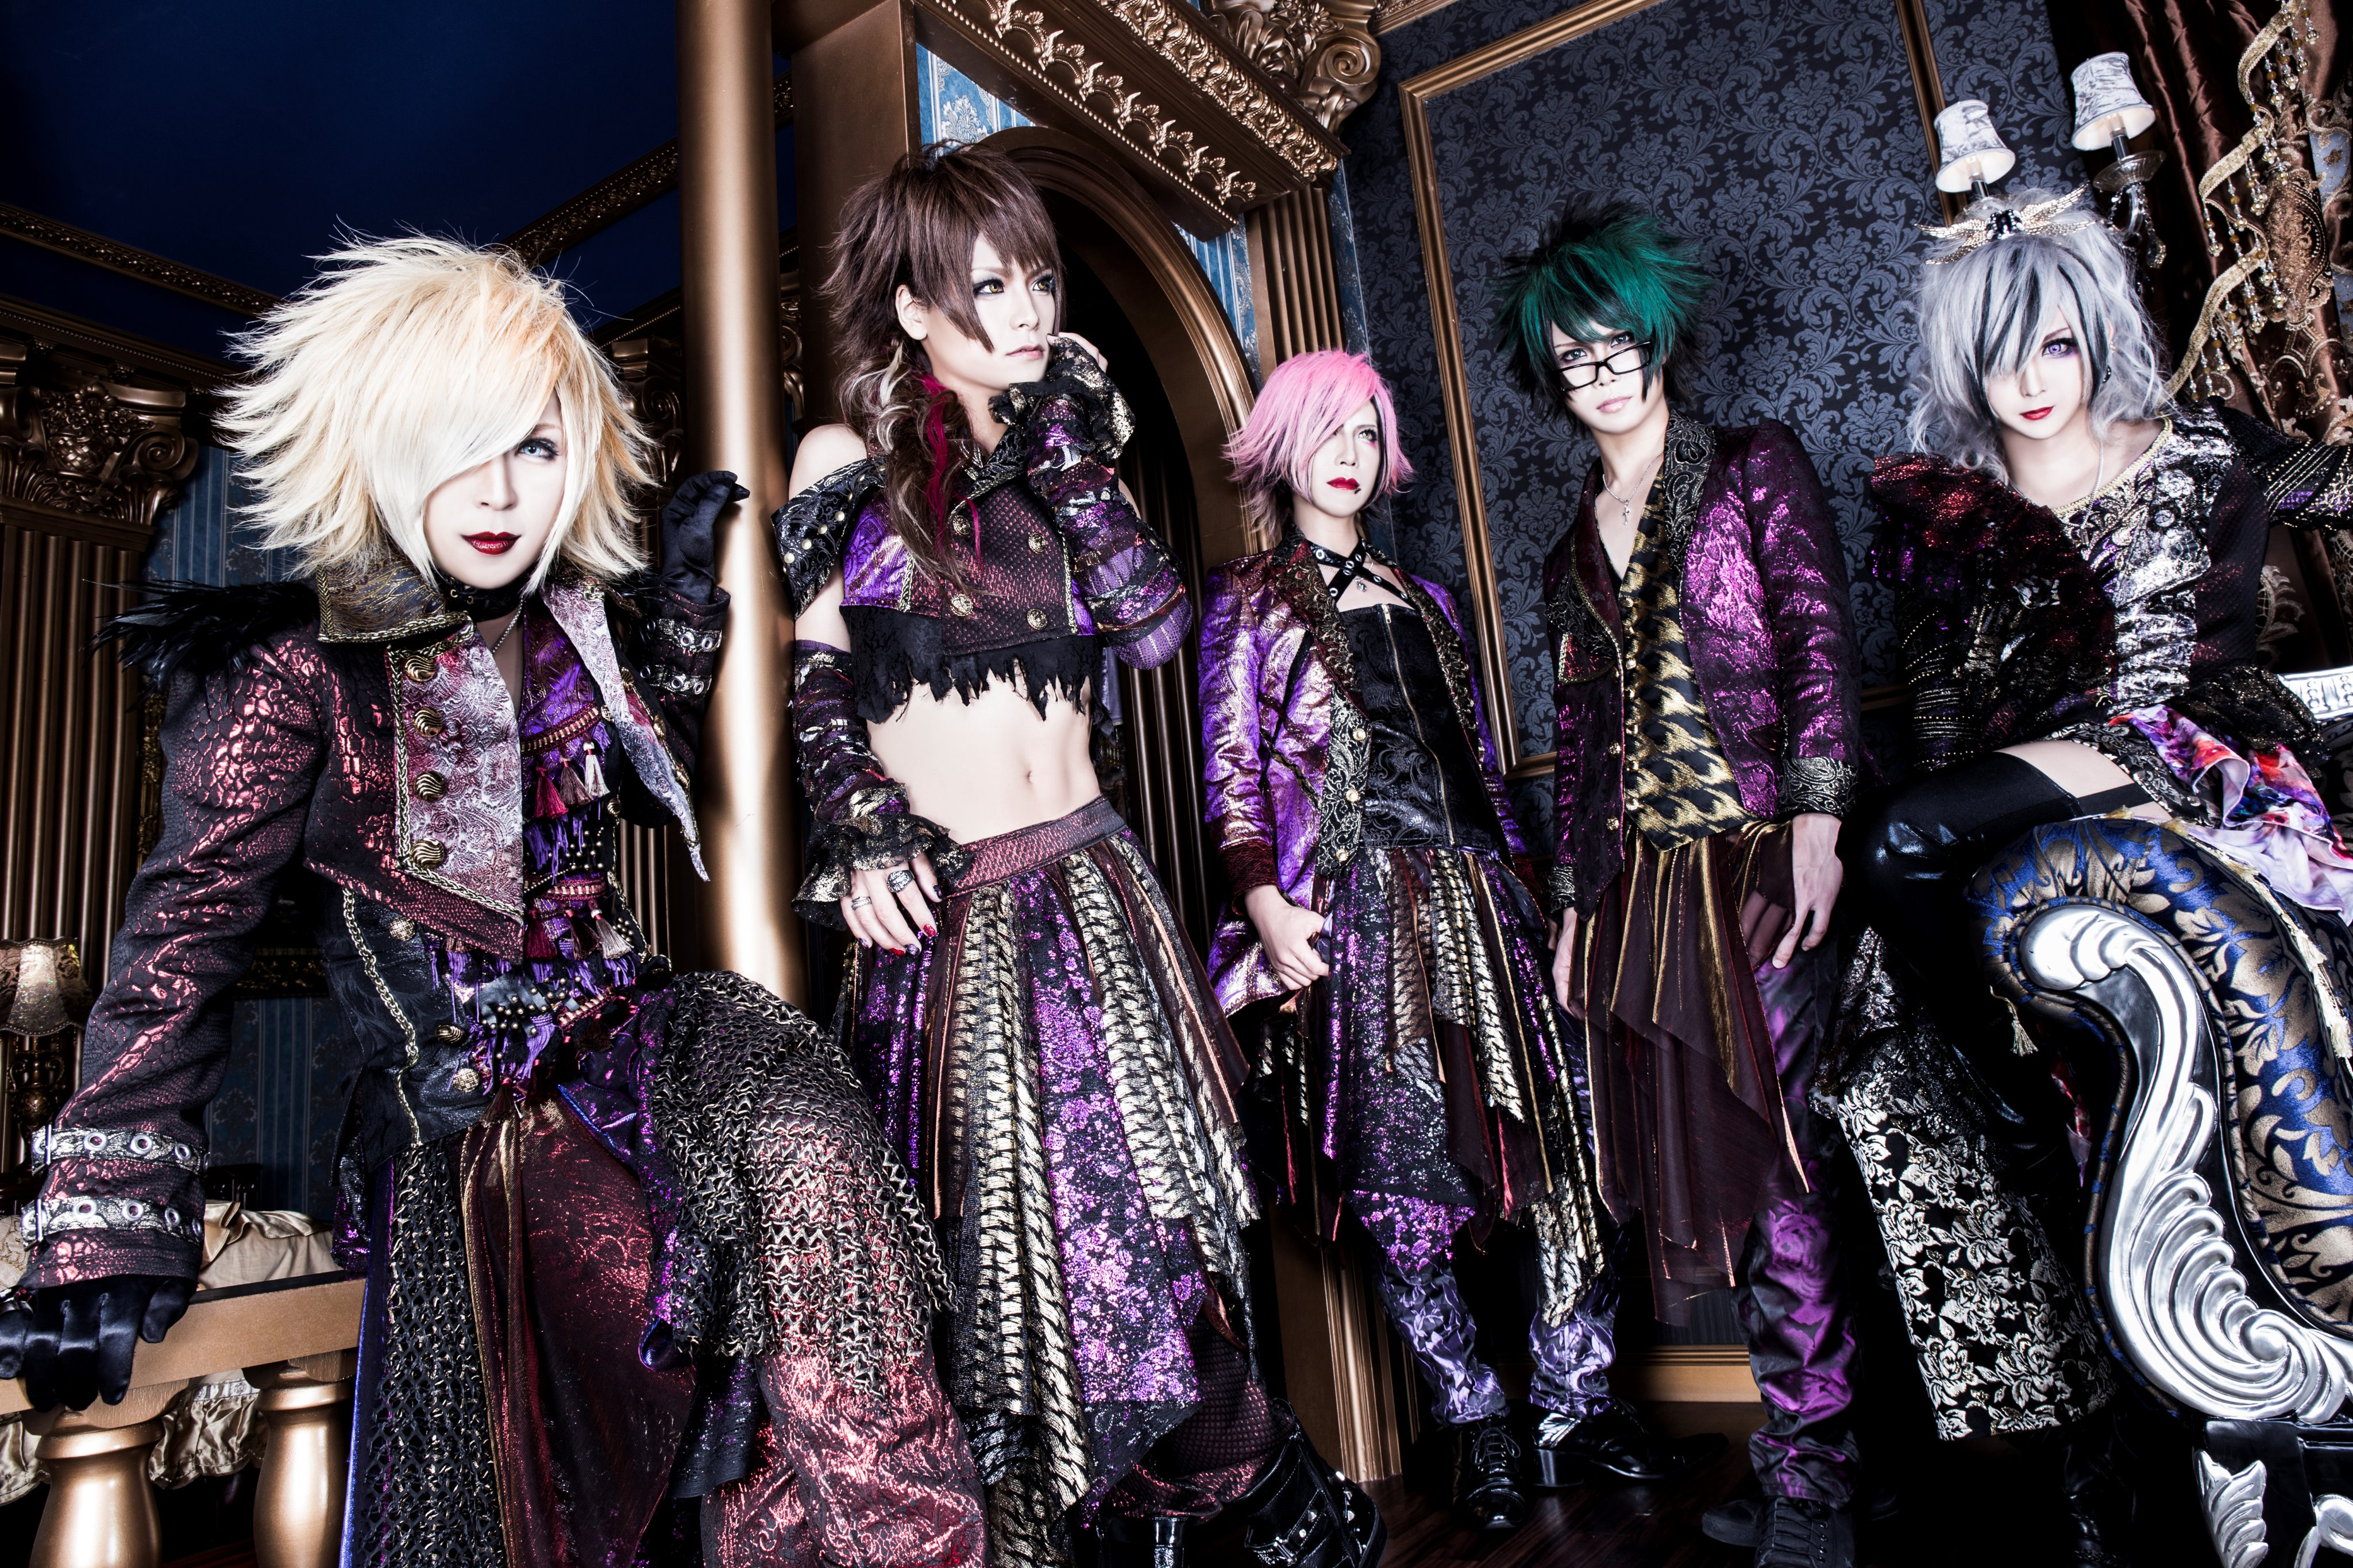 AVANCHICK new look, album details, and more